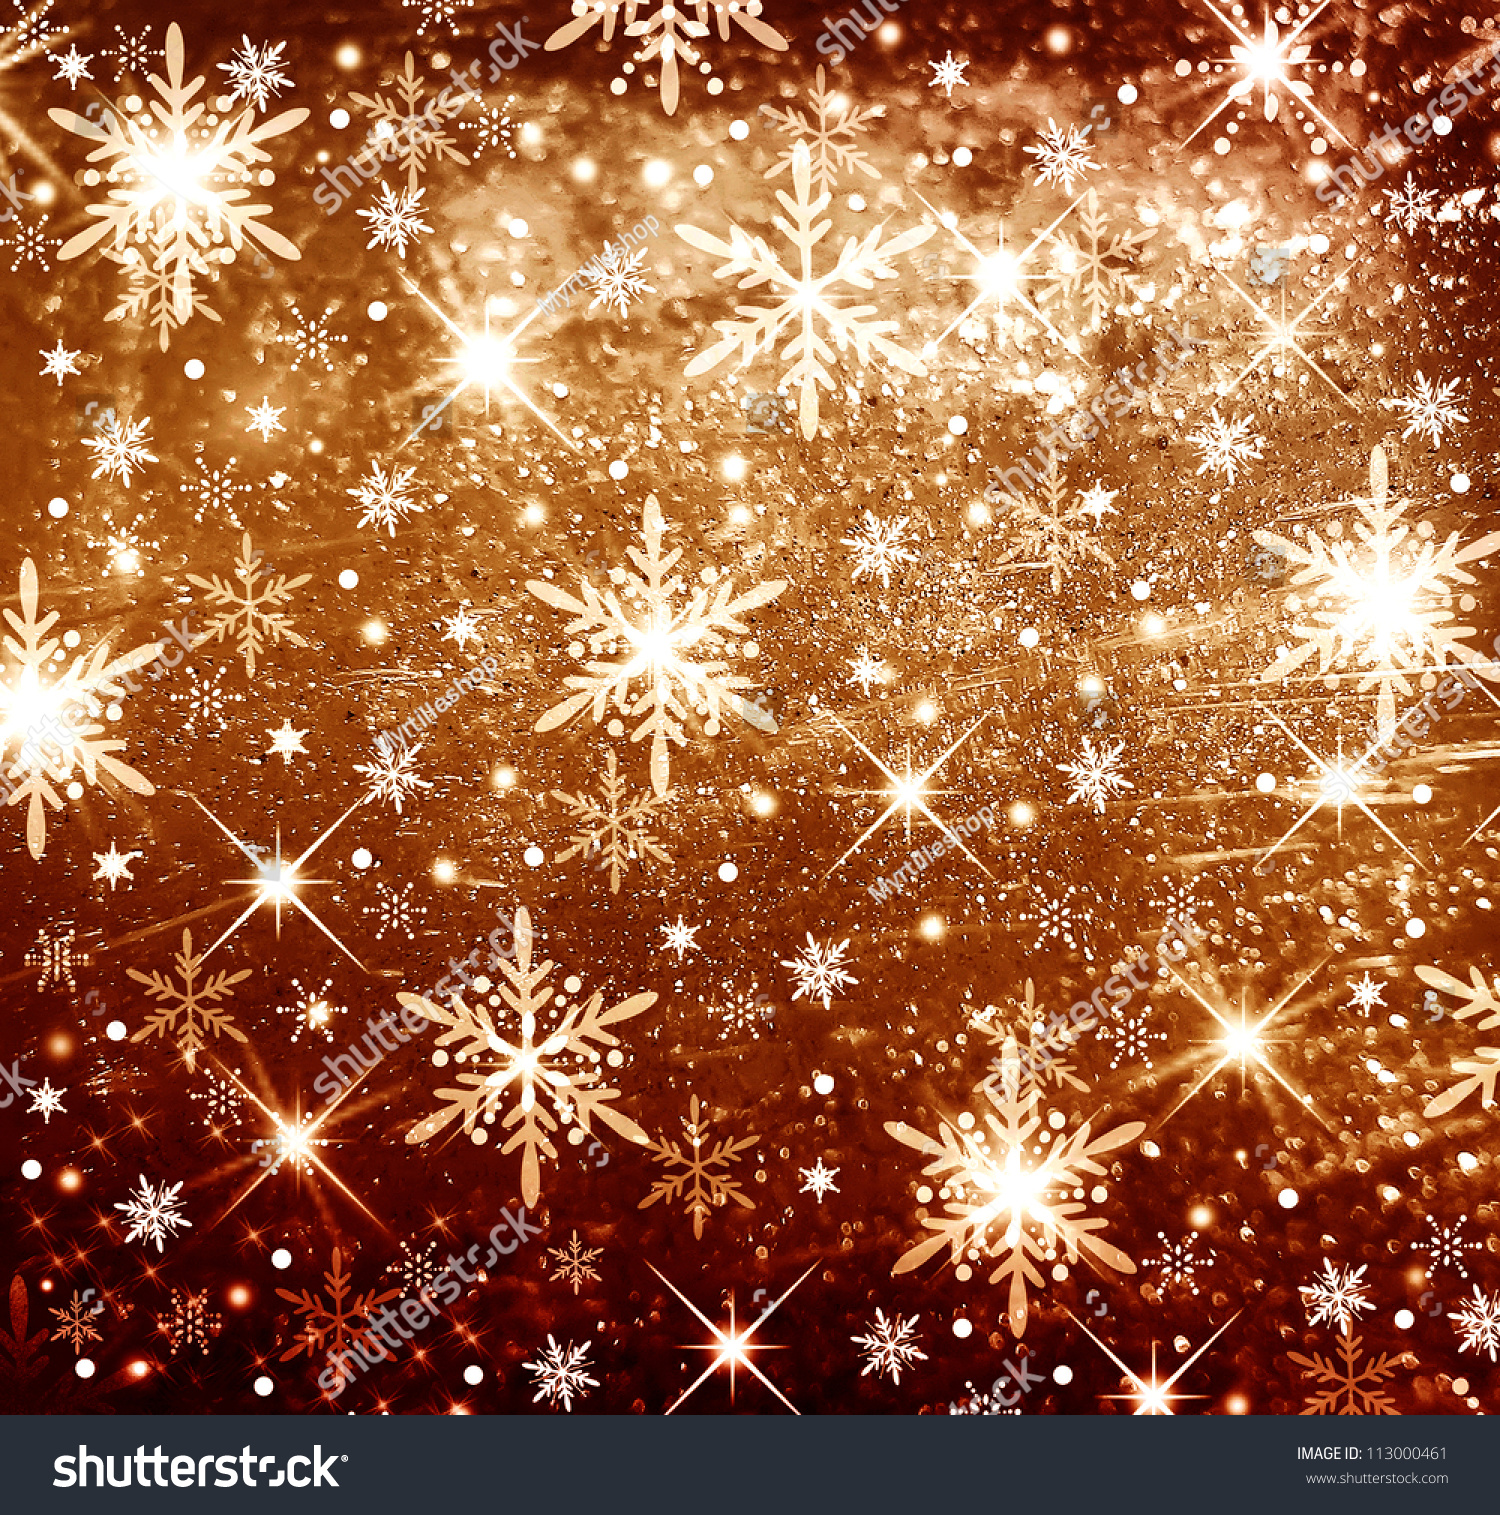 Christmas star background wallpapersafari